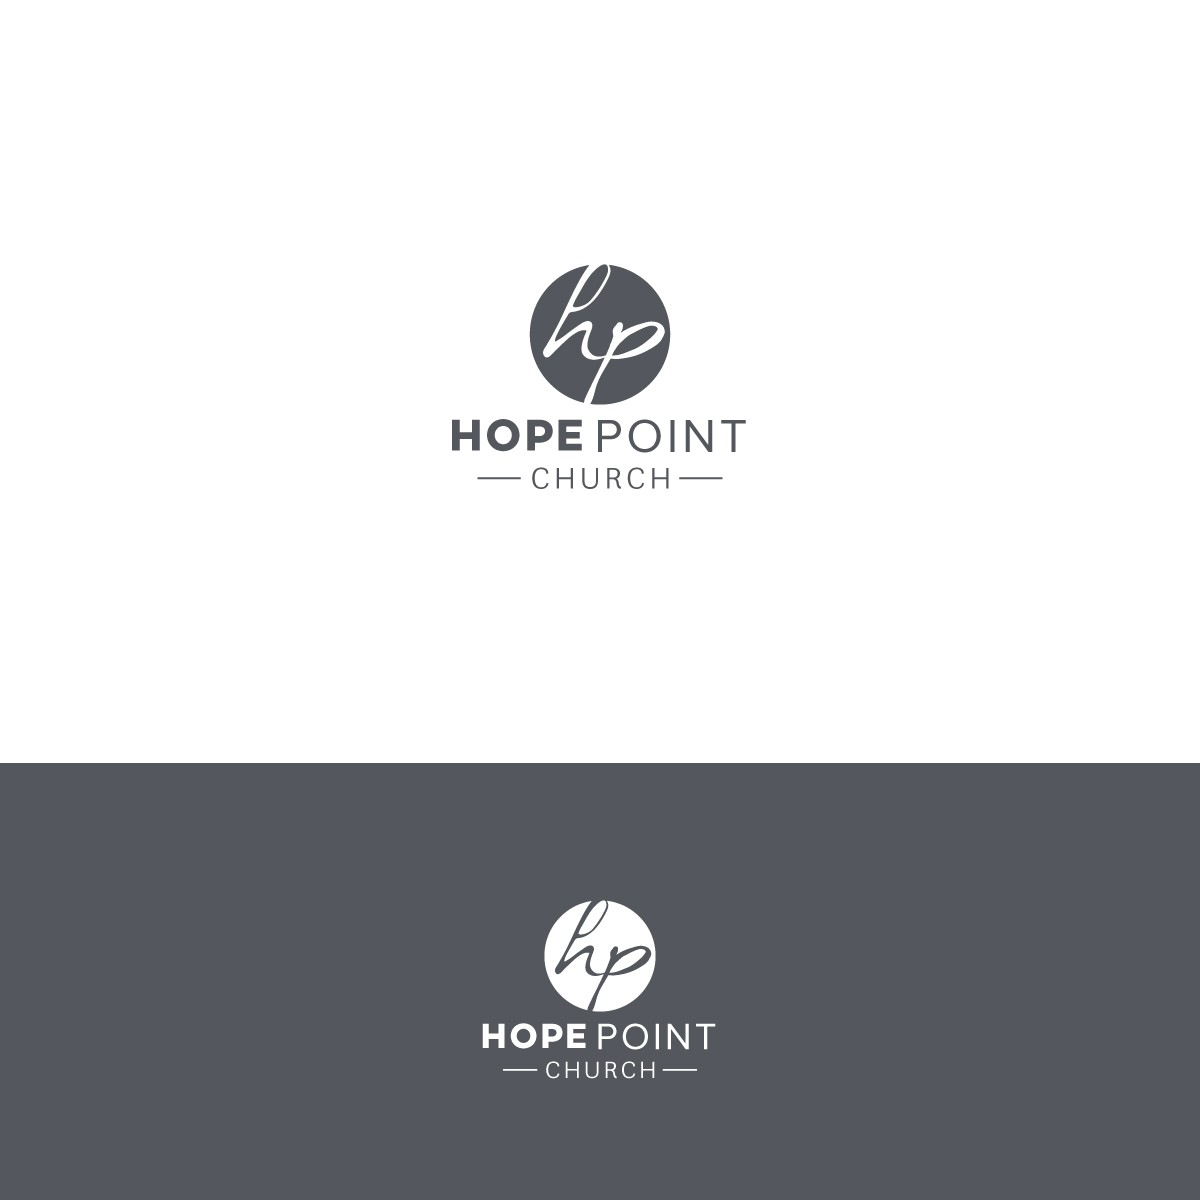 Tired of cheesy church logos? Us too! Help us rebrand by creating a dope logo for a thriving church